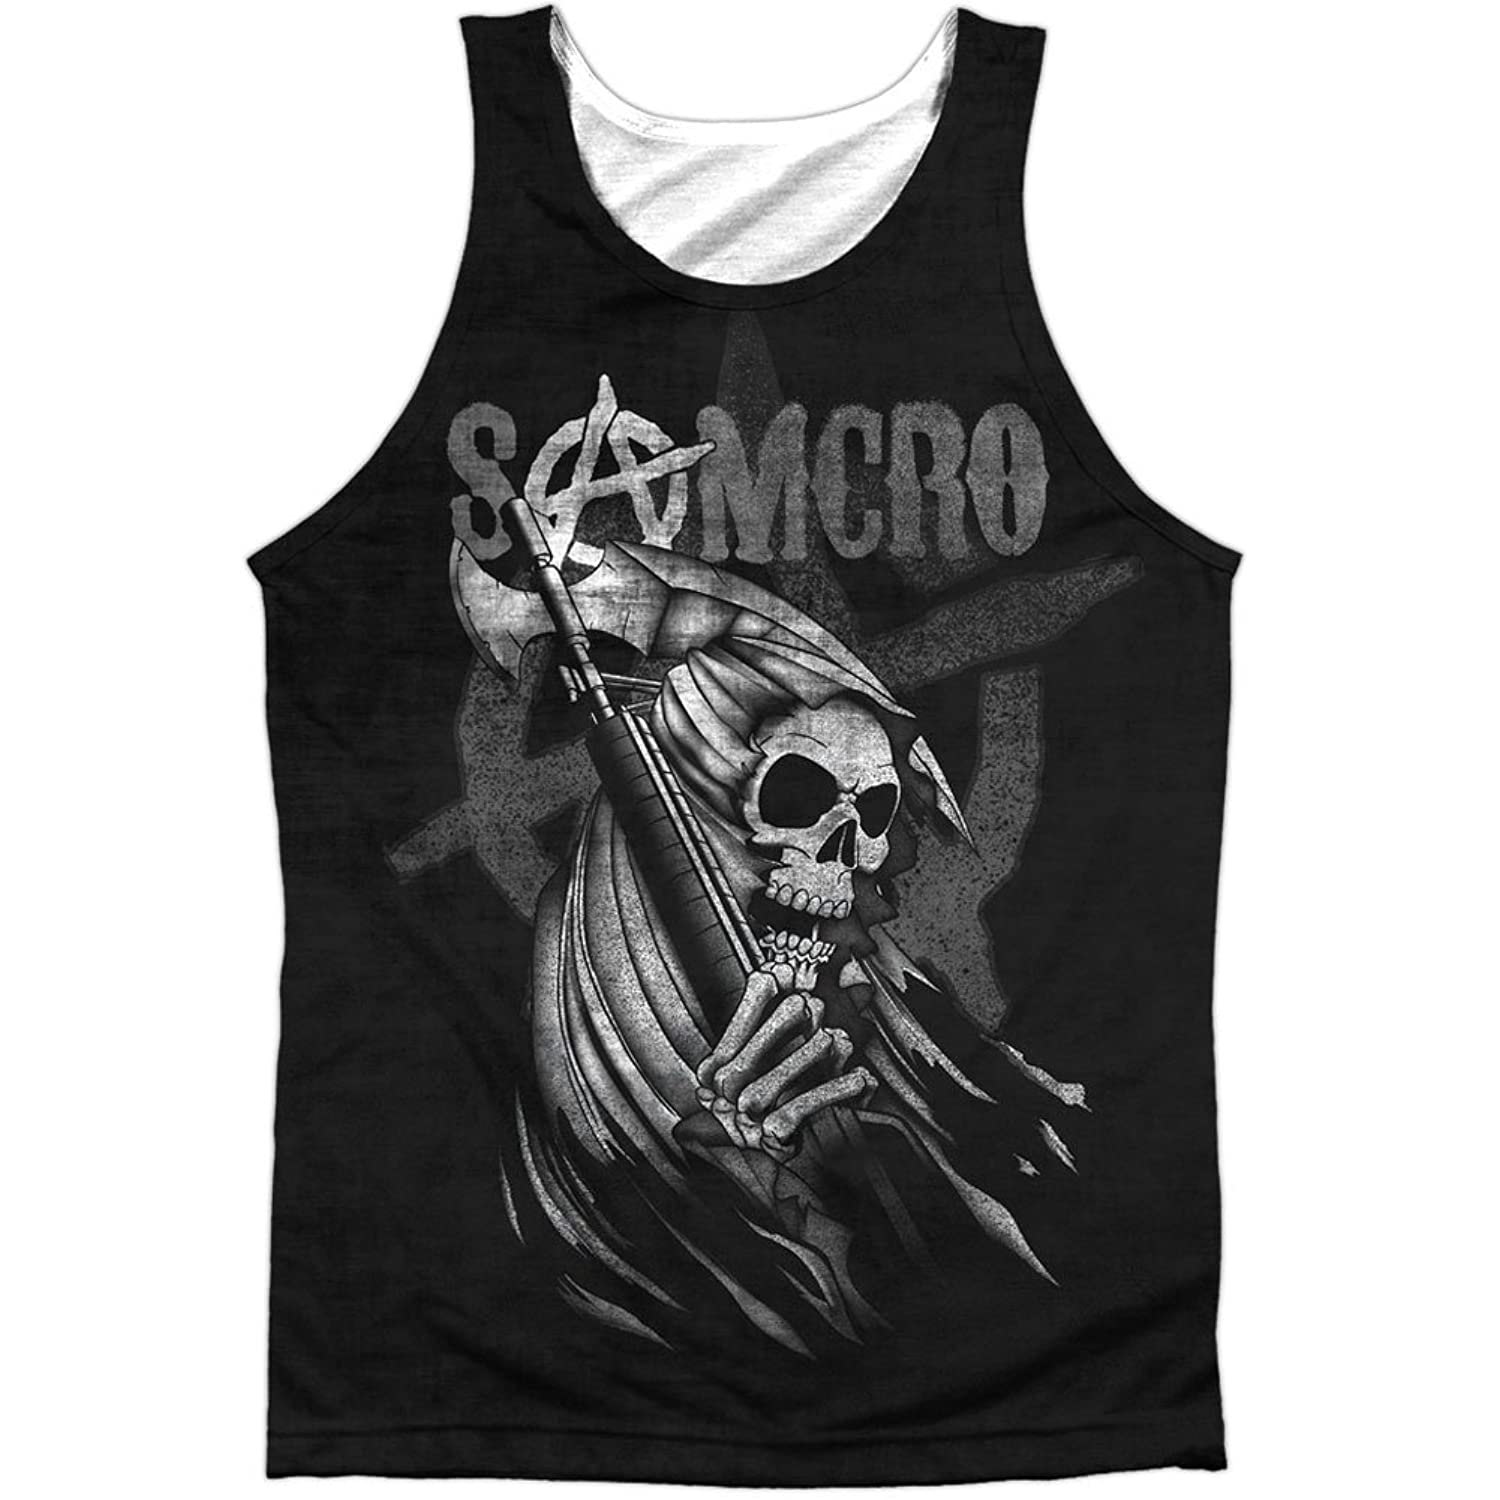 Sons Of Anarchy Drama Show Samcro Reaper Cartoon Front Print Tank Top Shirt